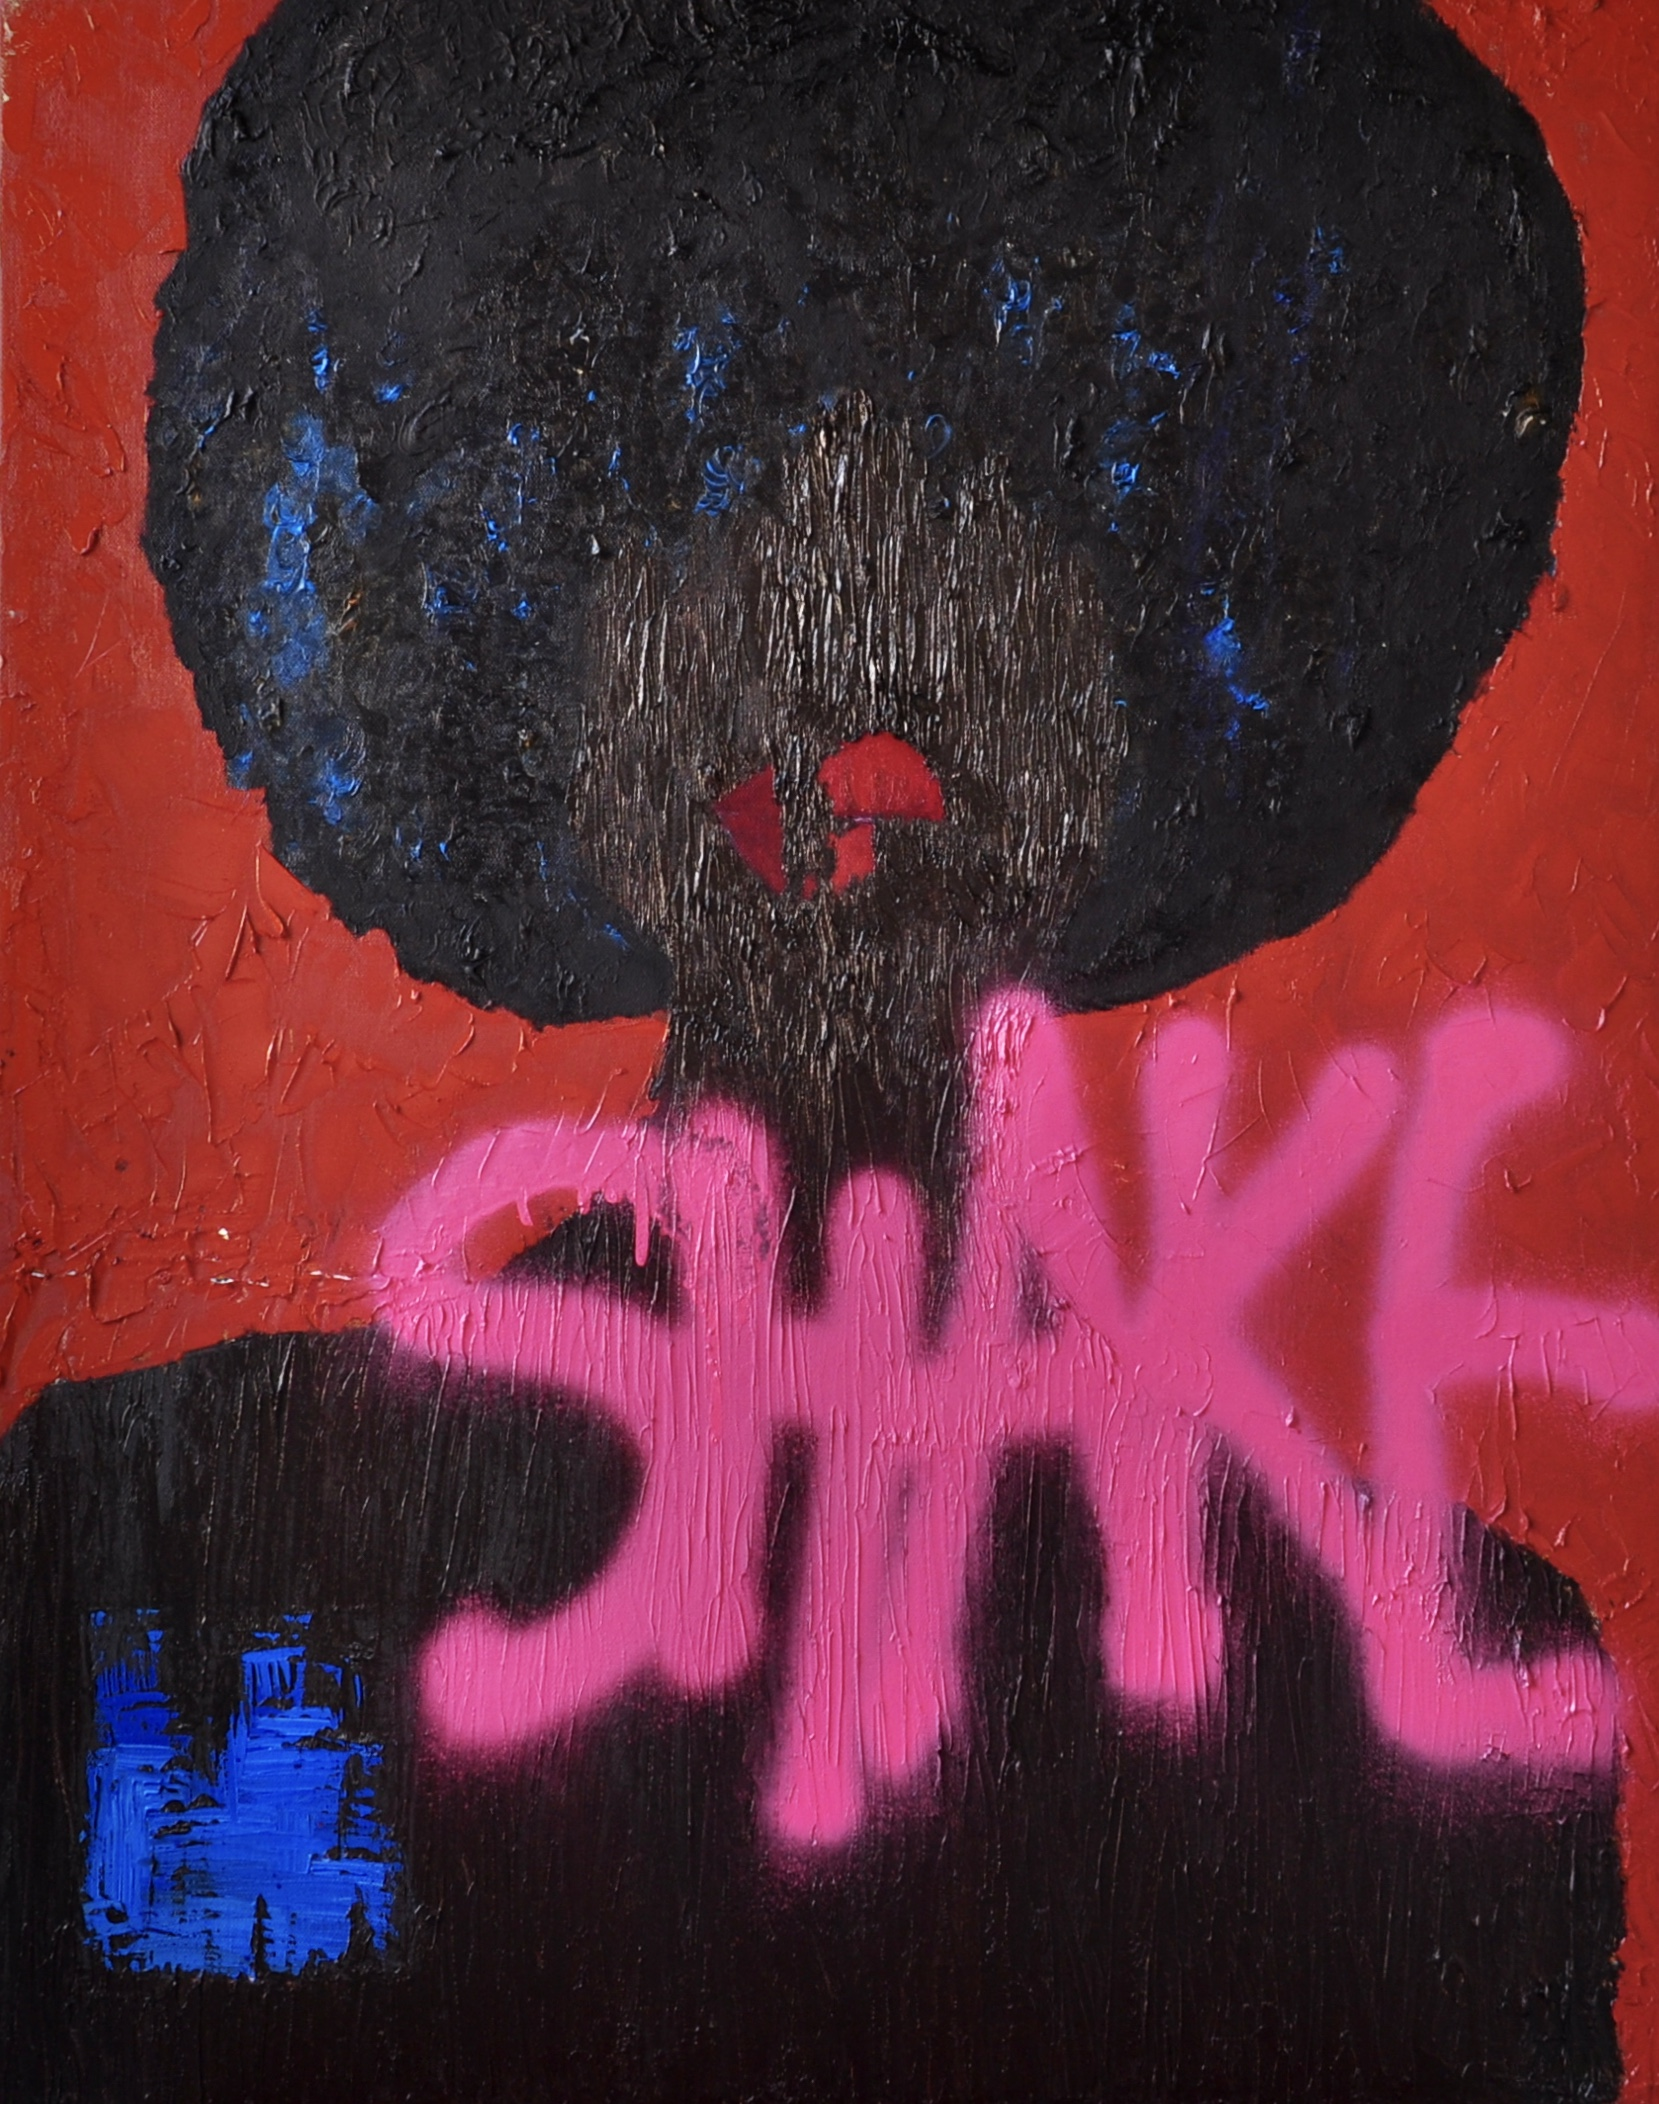 Shake  Oil and spray paint on canvas  28 in x 24 in